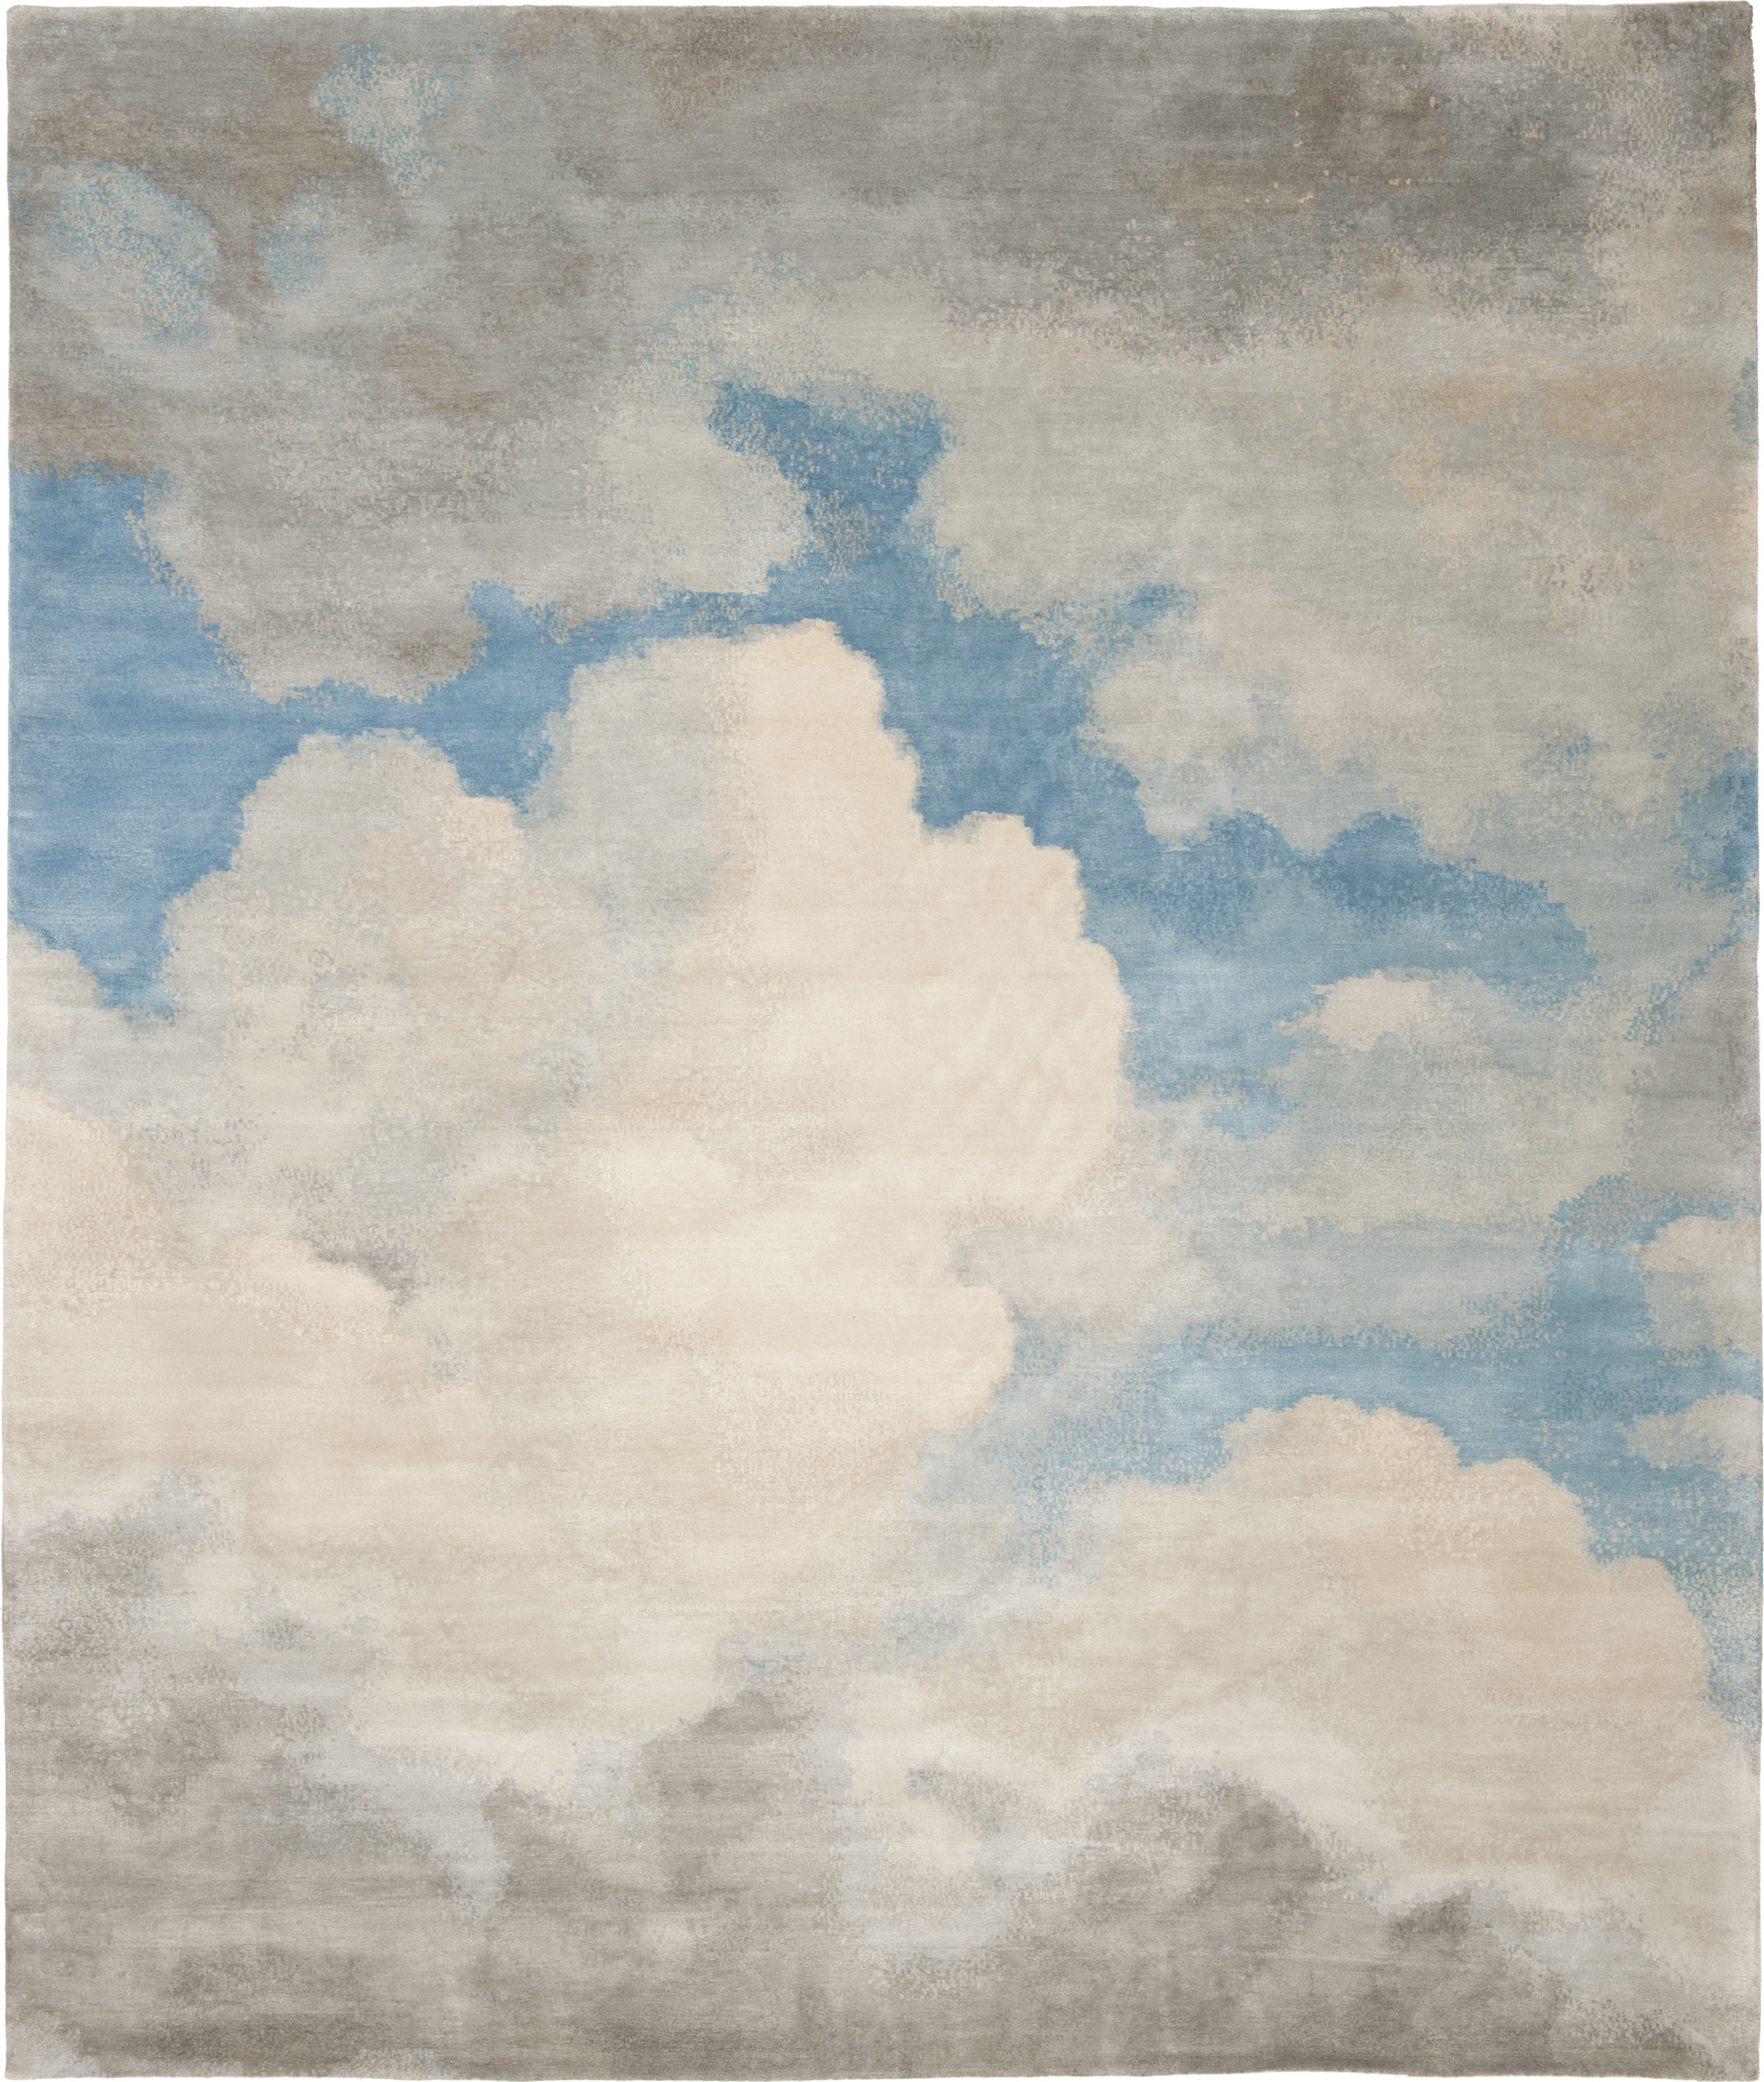 'Cloud' from the 'Heiter bis Wolkig' Collection by Jan Kath. 'Heiter bis wolkig' translates as 'partly cloudy' in English. | Image courtesy of Jan Kath